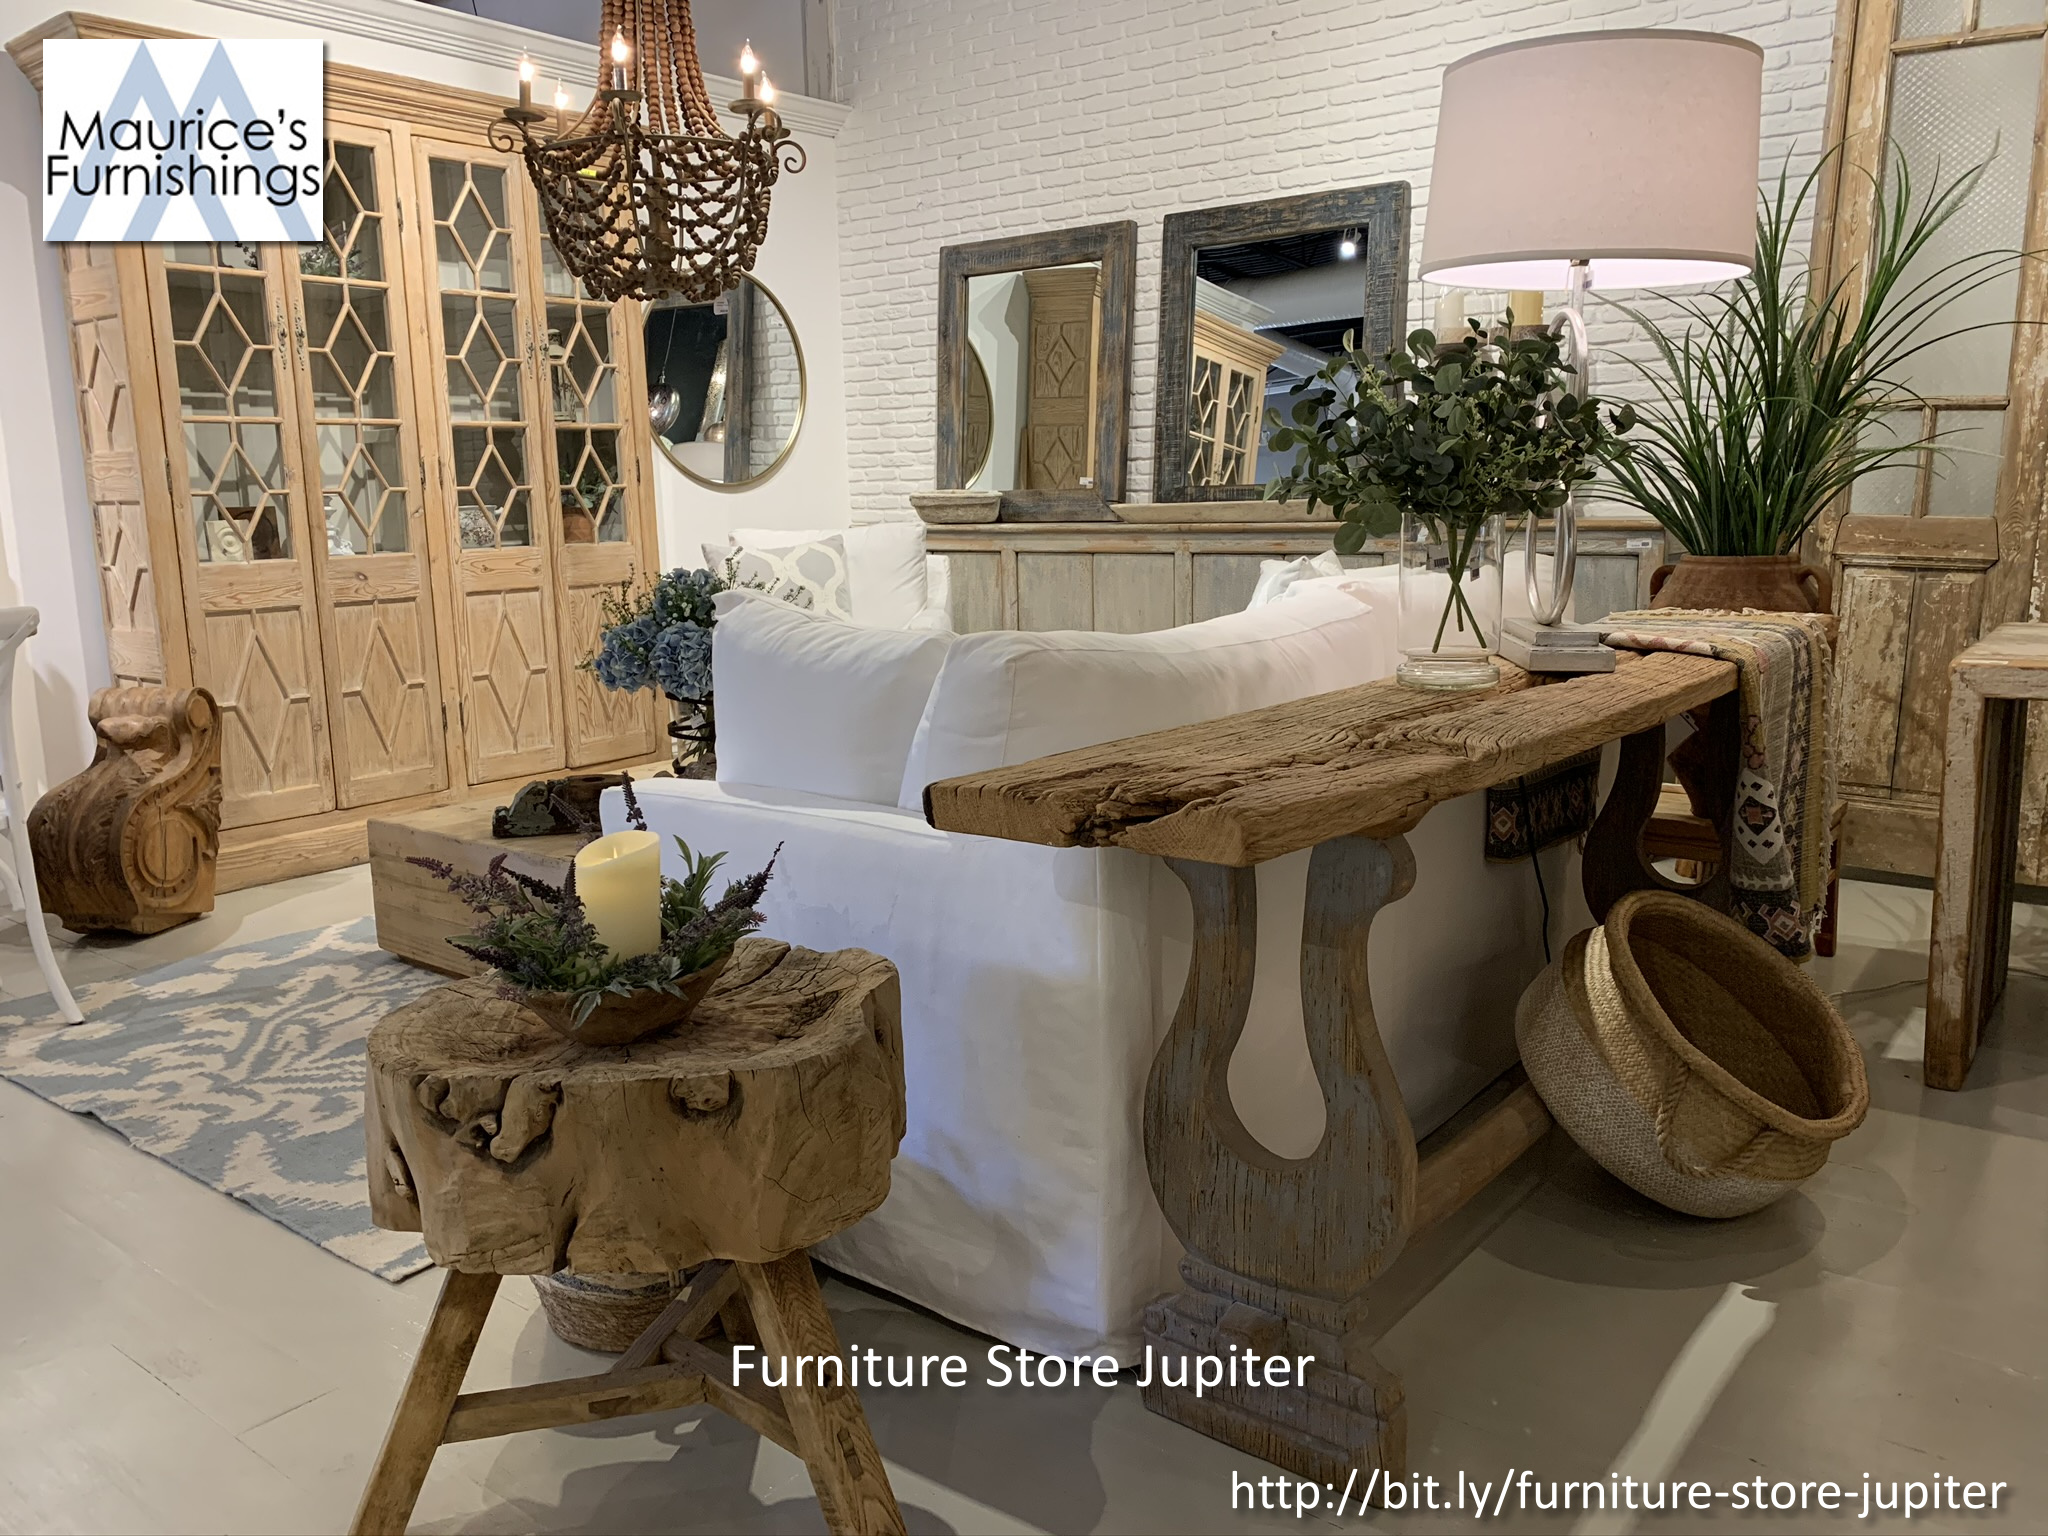 Maurice's Furnishings Outlines the Beauty and Versatility of Custom Cabinetry